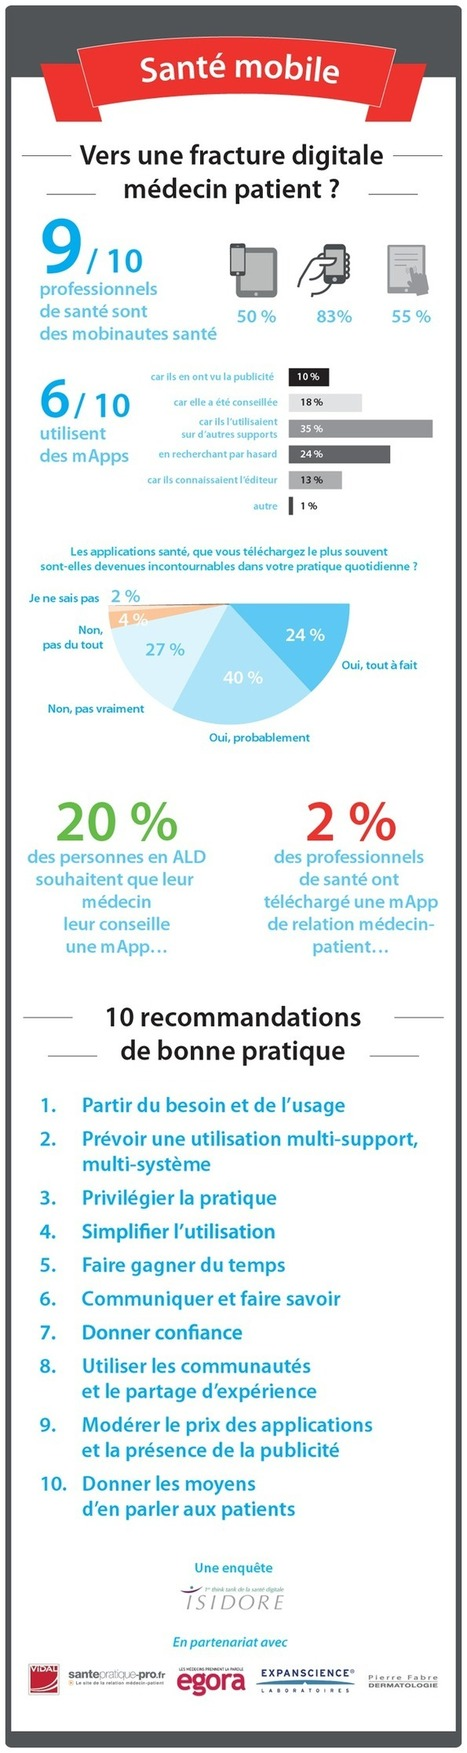 Infographie : Santé mobile, vers une fracture médecin-patient ? | re-inventing ourselves every day | Scoop.it